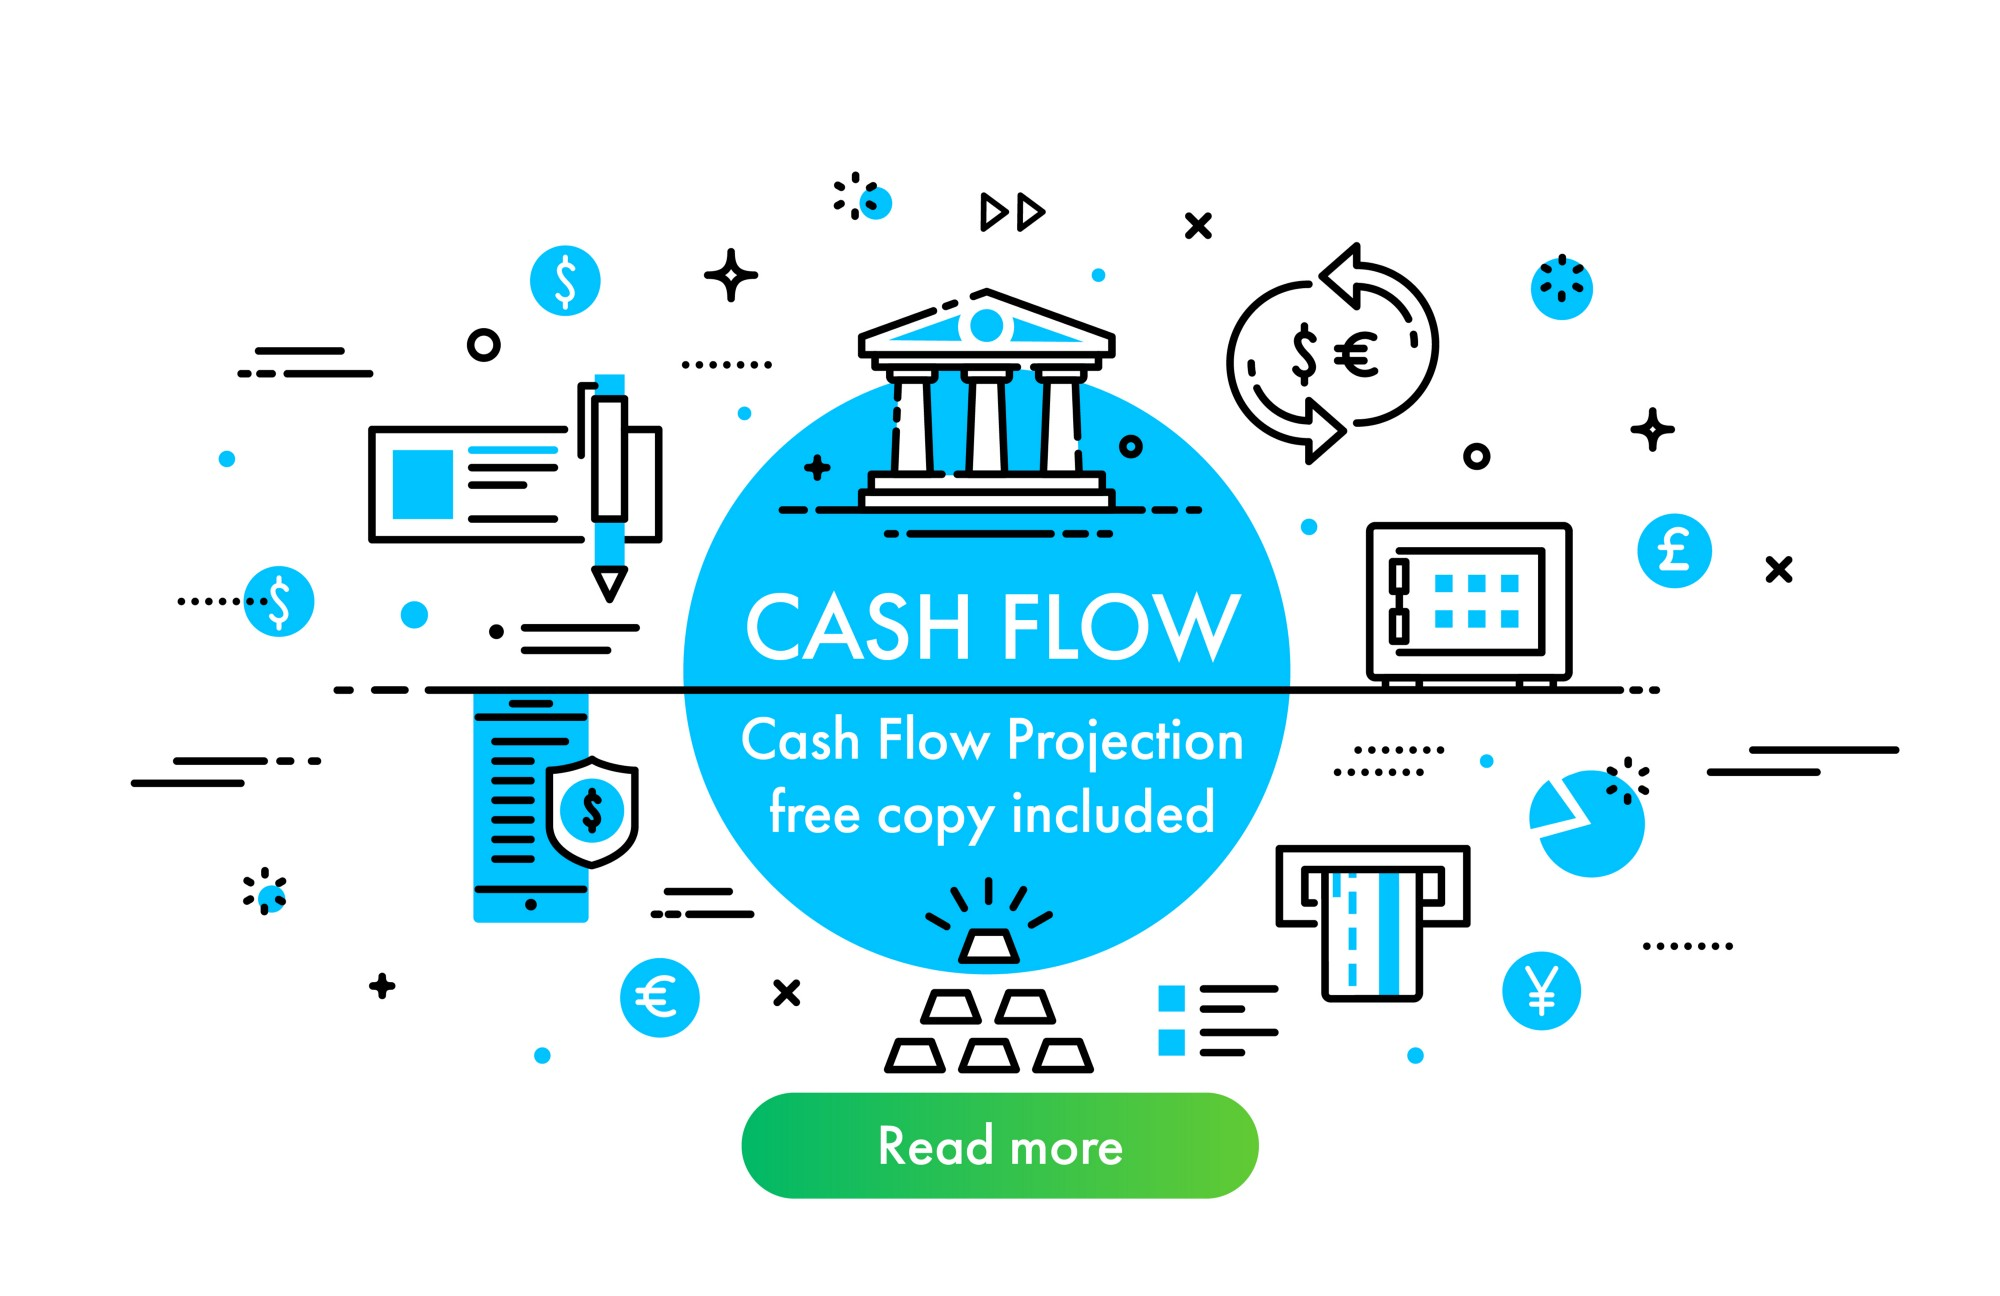 cash flow projection free copy included